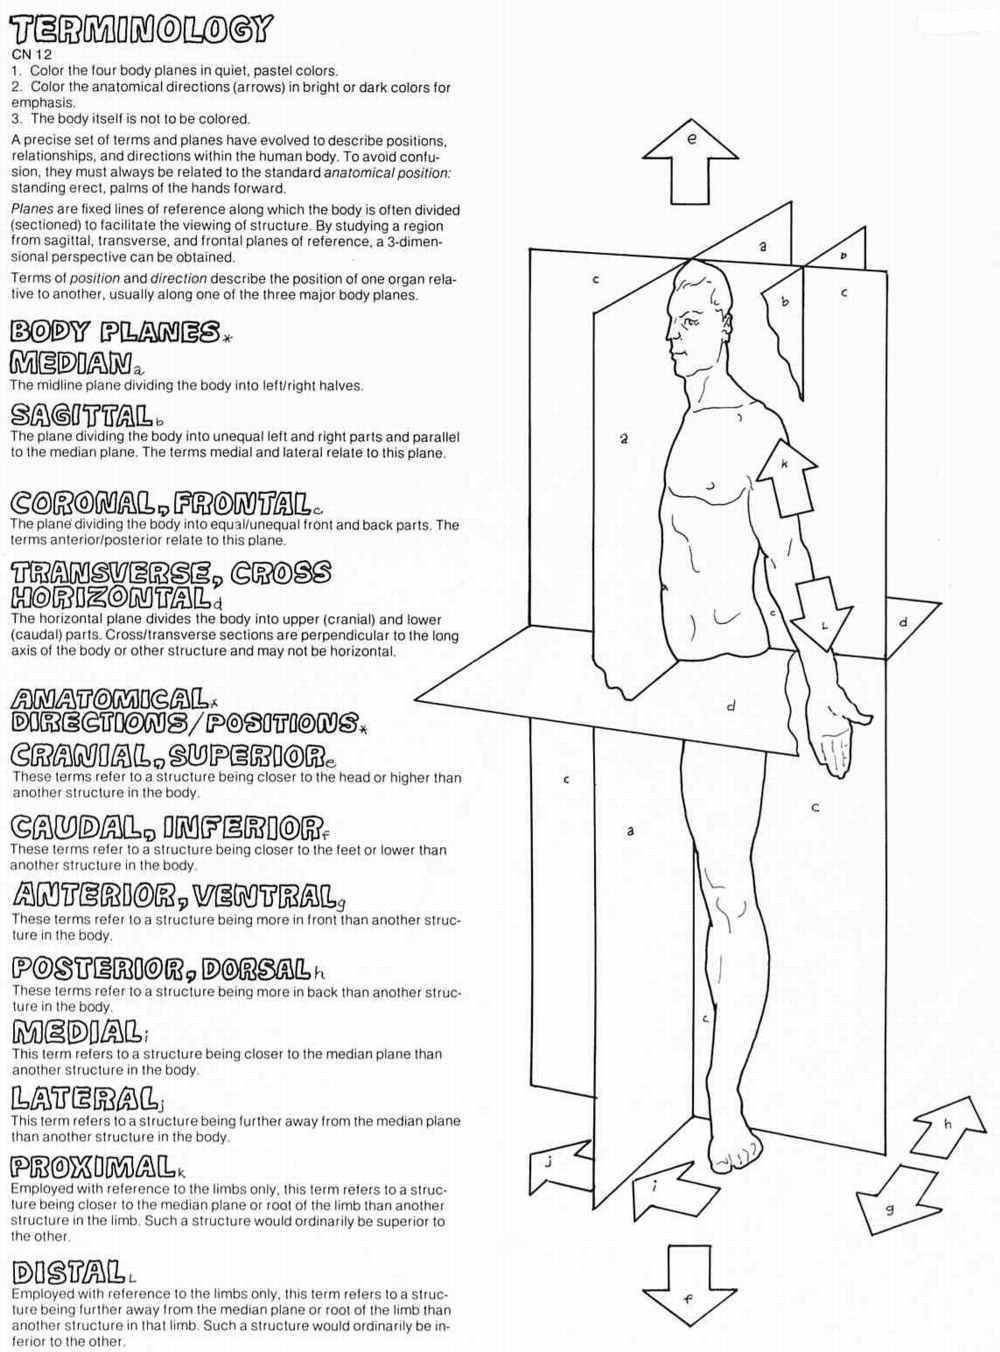 worksheet Anatomical Position Worksheet 10 best images about anatomy on pinterest videos planes and axial skeleton